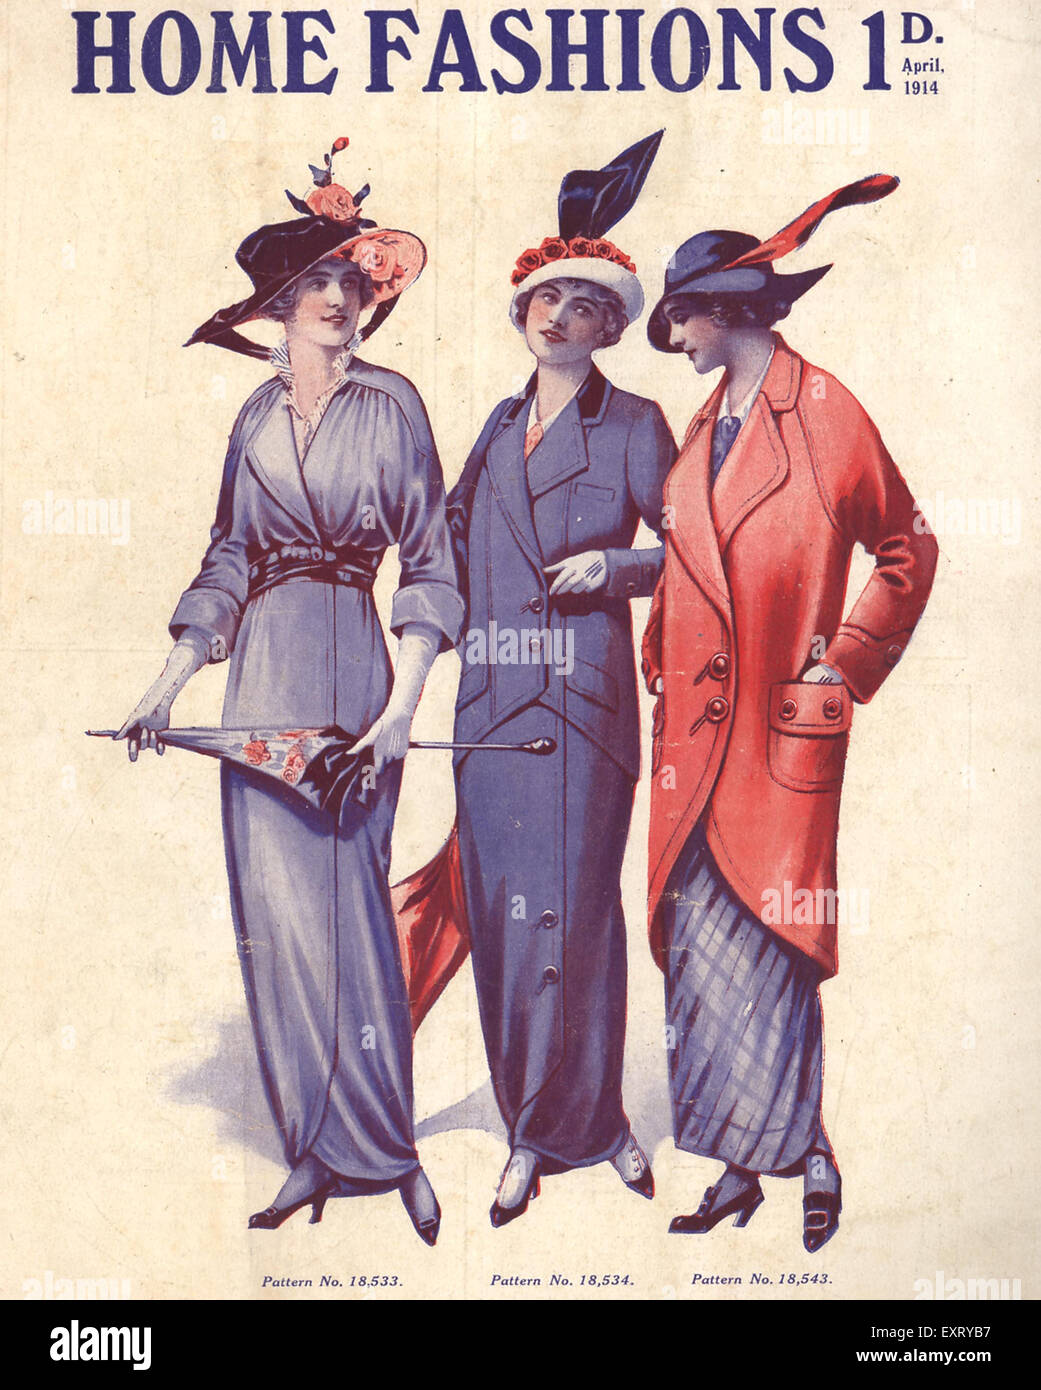 1910s Uk Home Fashion Magazine Advert Stock Photo